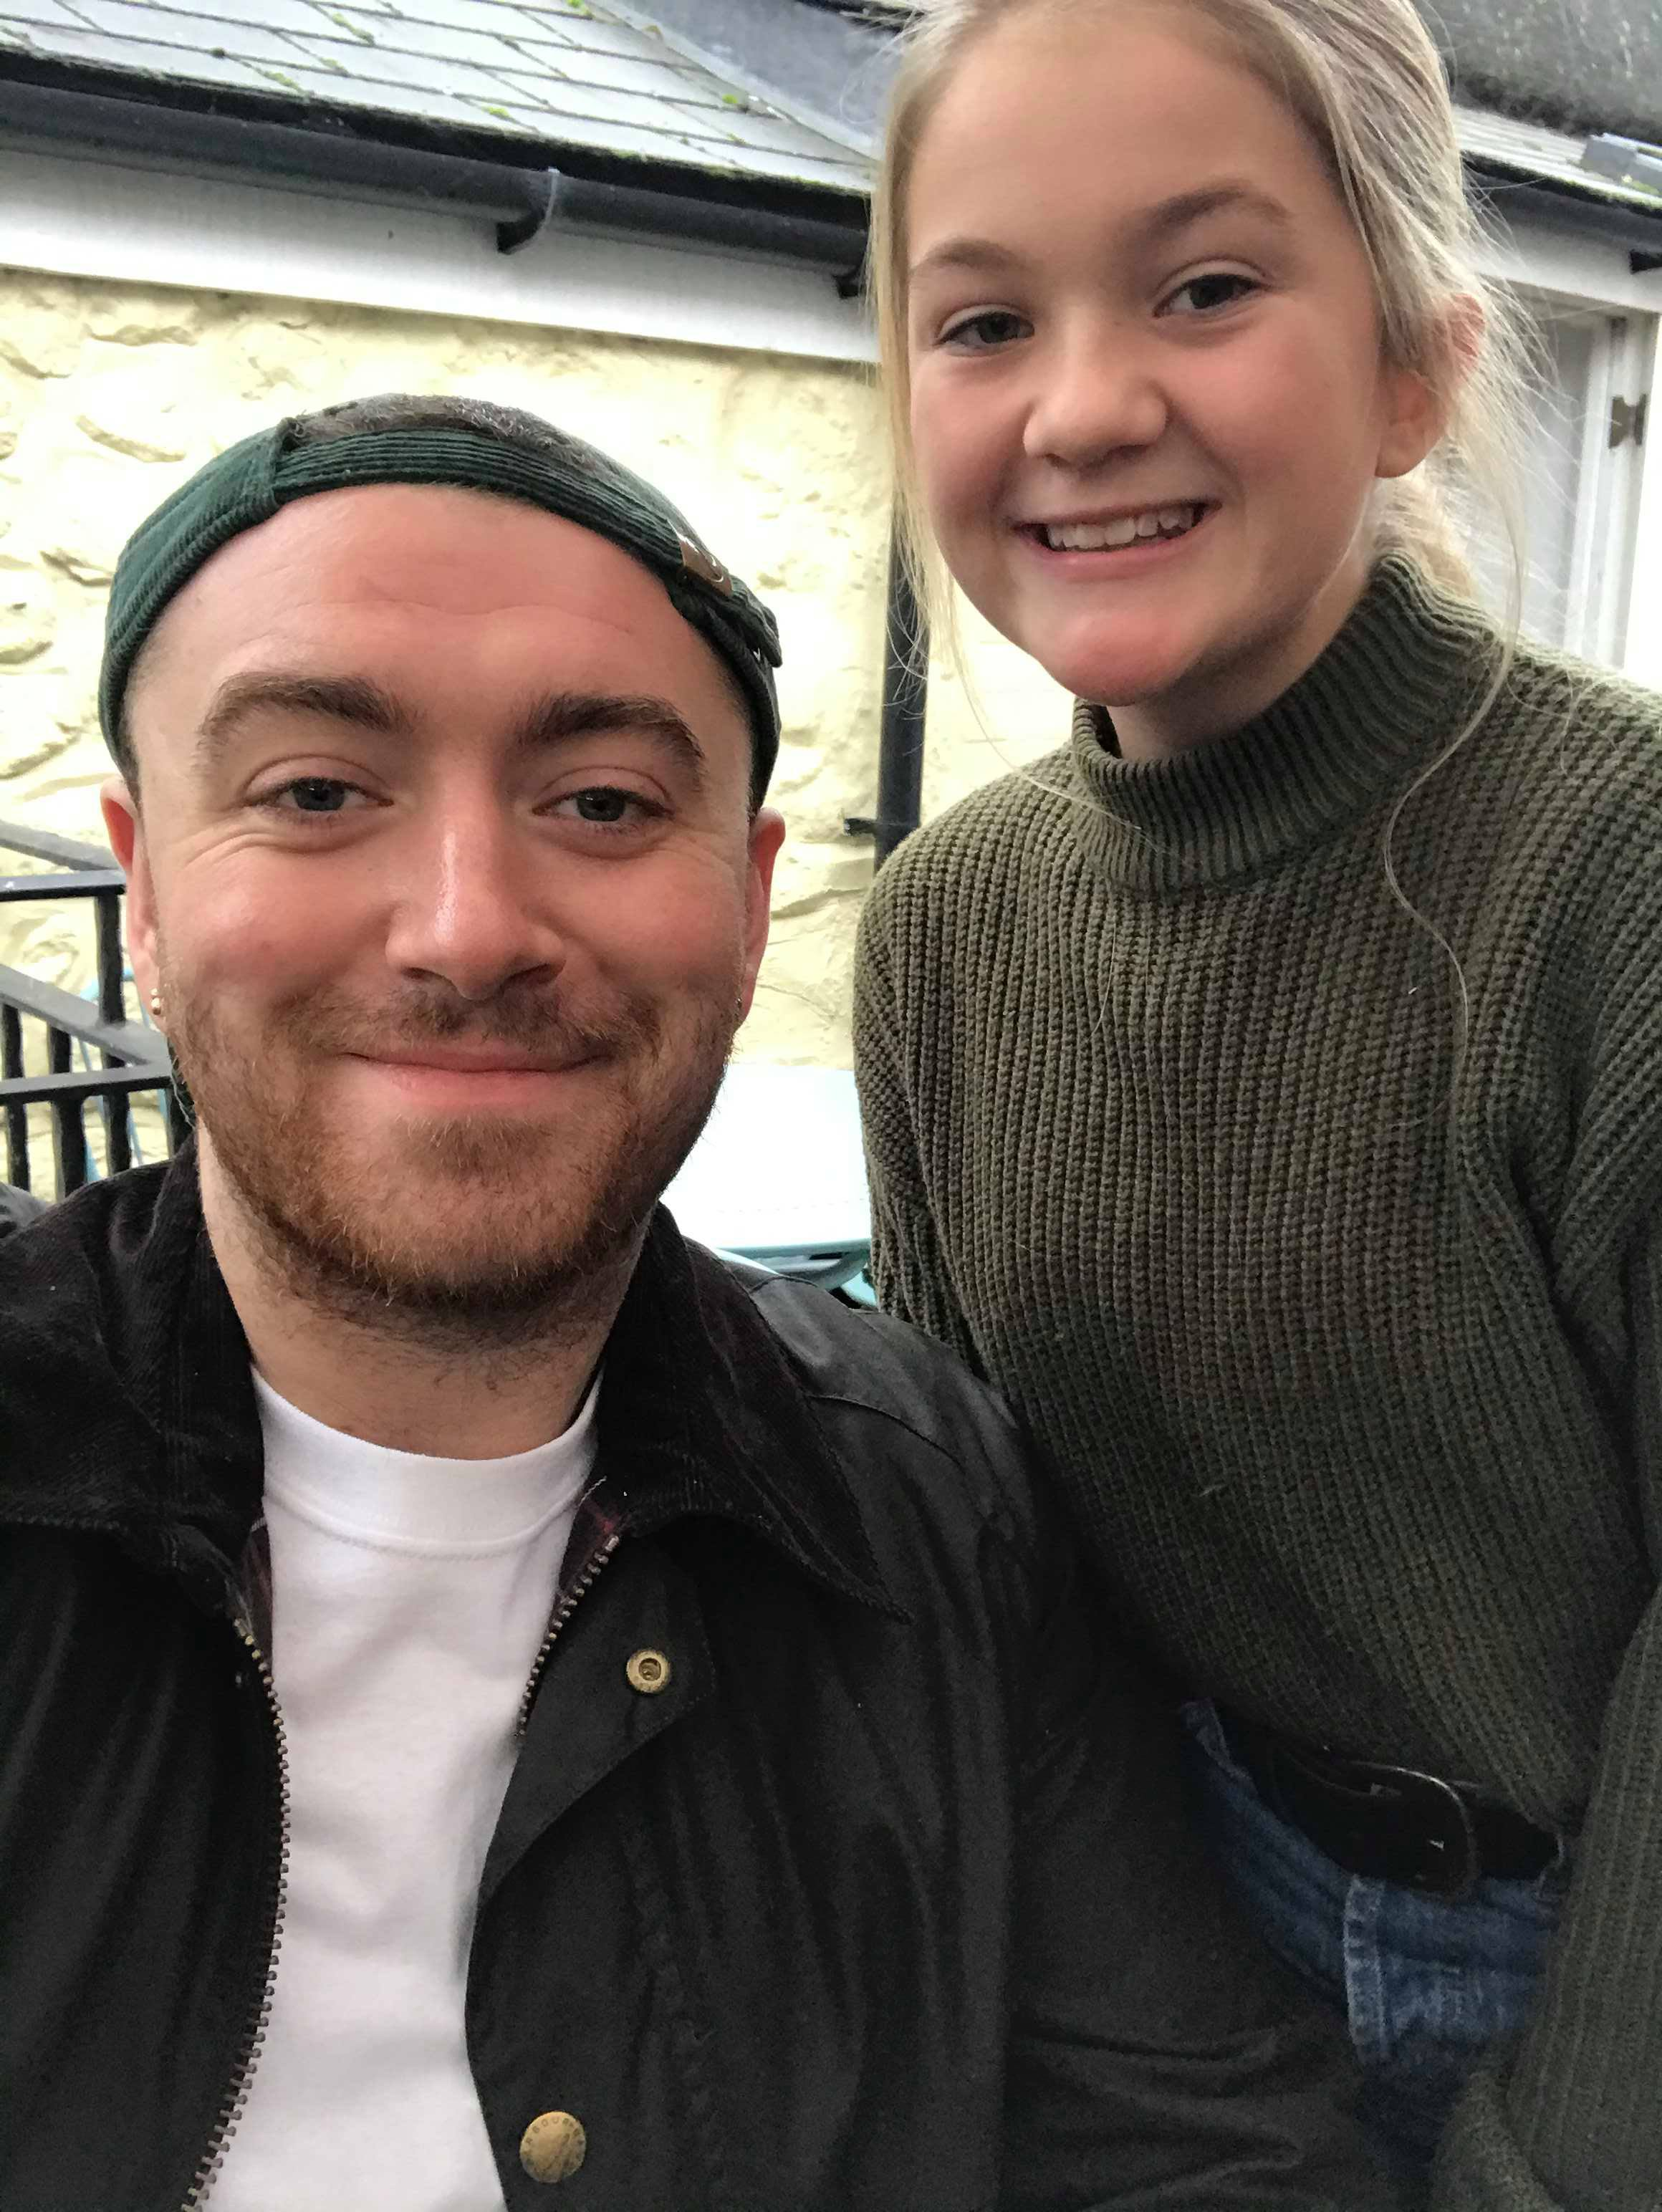 Singer Sam Smith spotted on the Isle of Wight again today